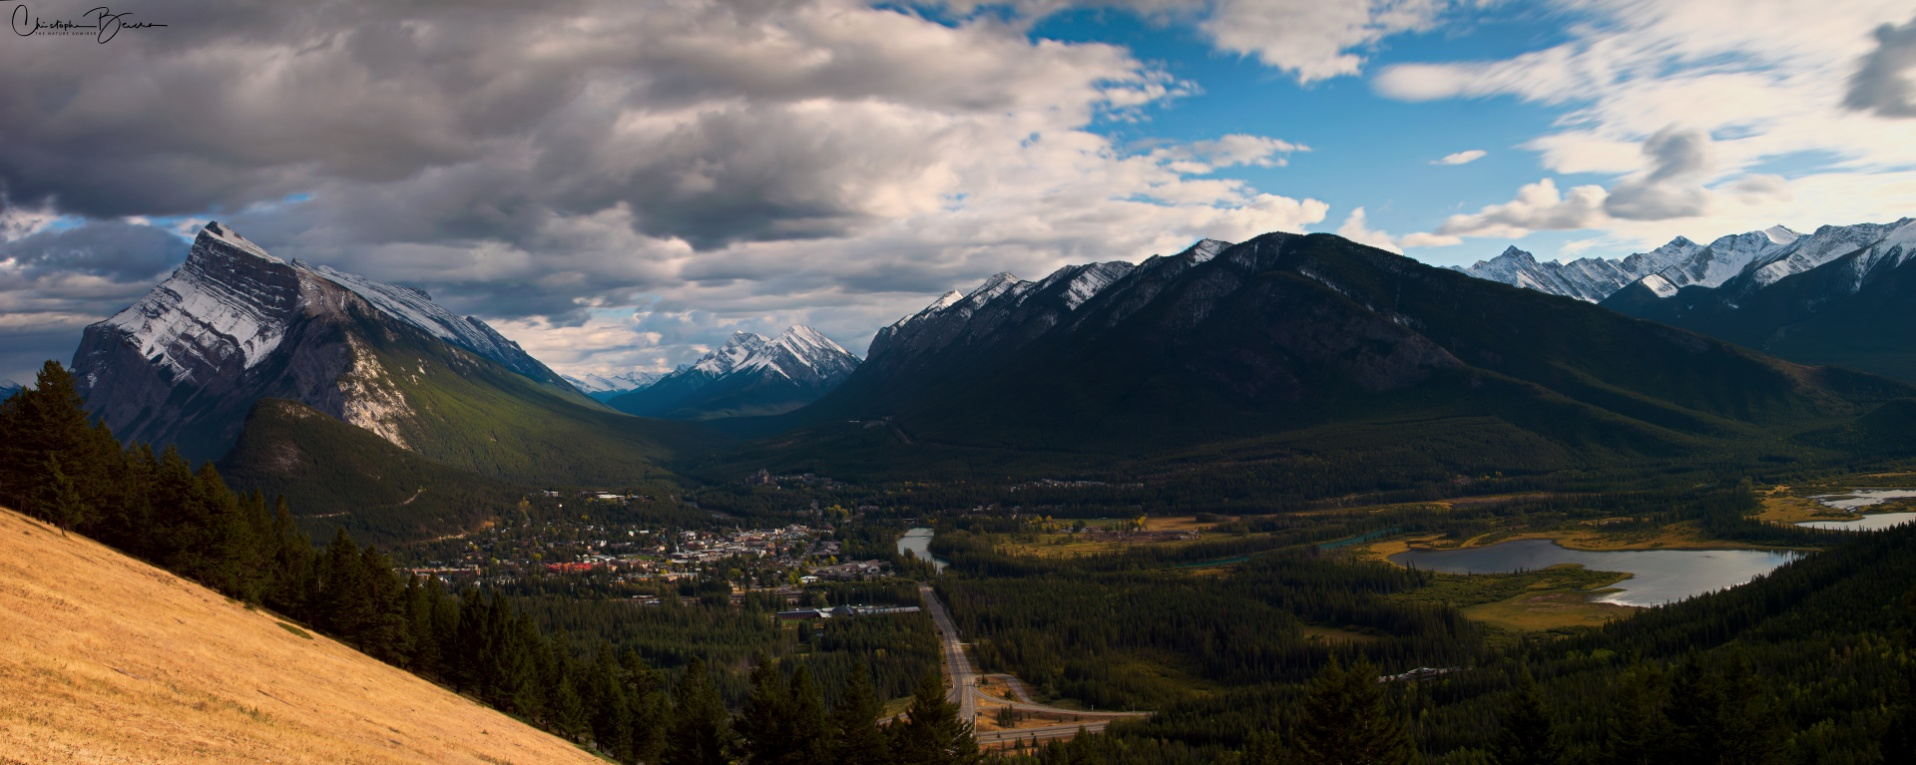 Banff in a Panorama. Vermillion lakes are visible to the right, and Mount Rundle to the left. On the center, Sulphur Mountain.